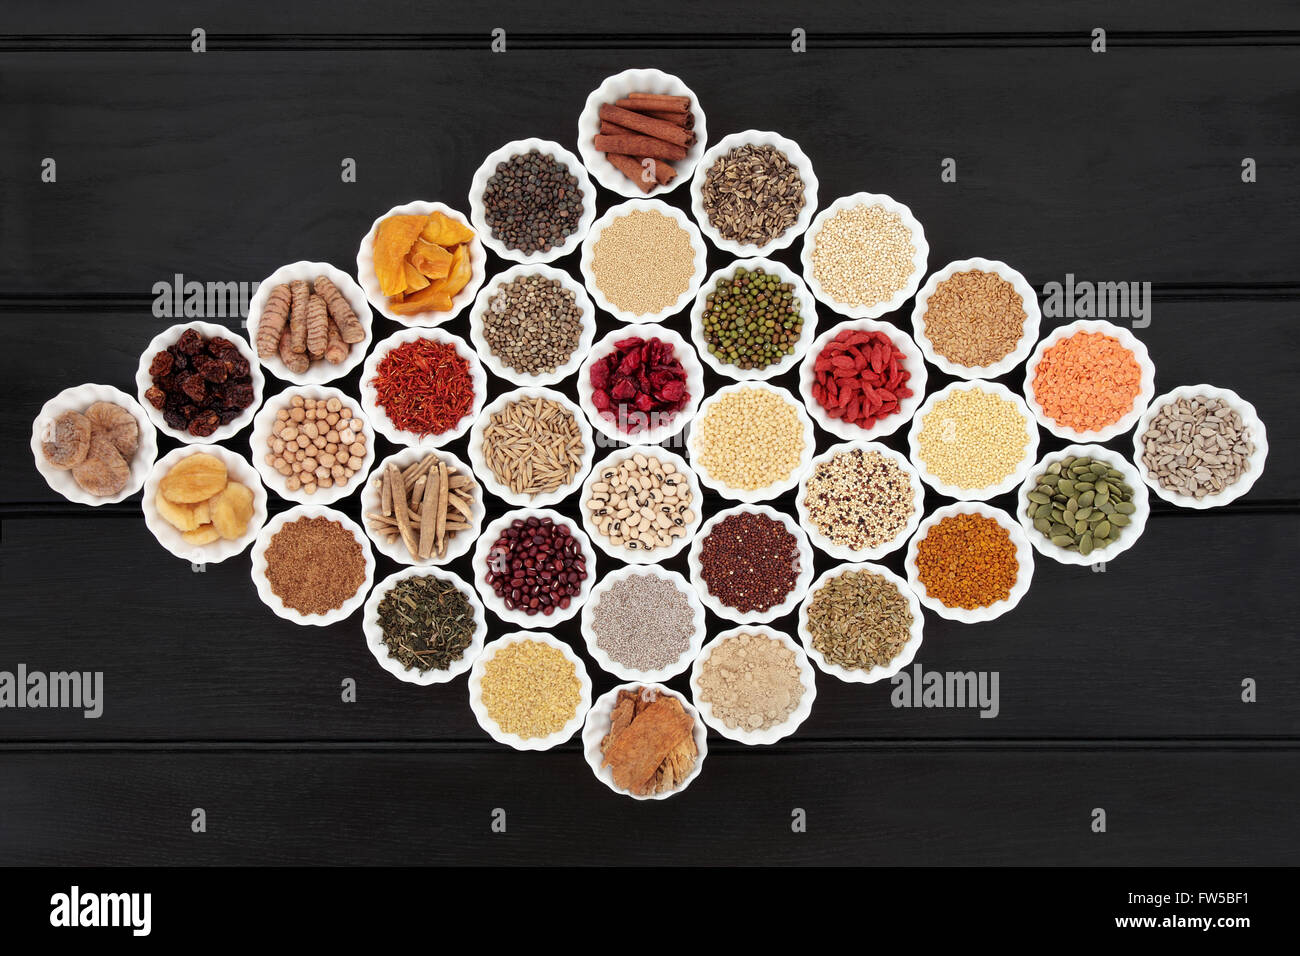 Large dried health food sampler in china bowls forming an abstract background. High in antioxidants, minerals and - Stock Image